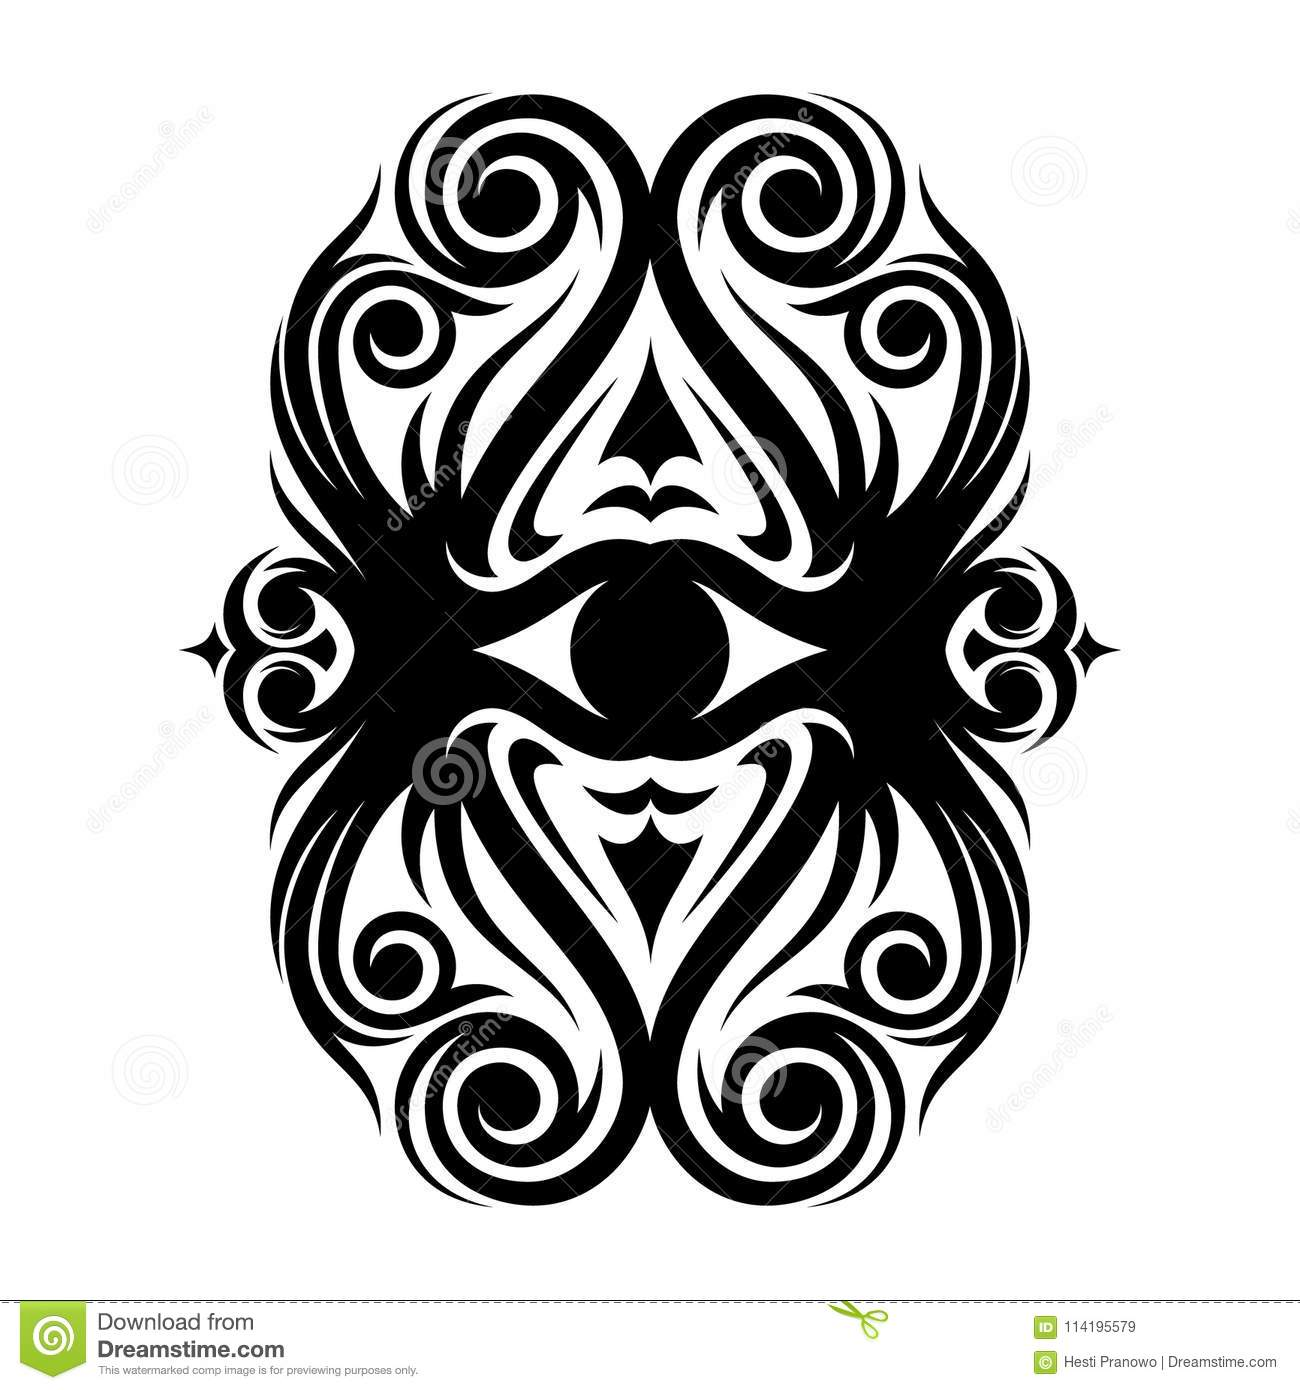 Download Best Creative Vintage Style Floral Eyes With Ethnic Tribal Ornaments Stock Vector